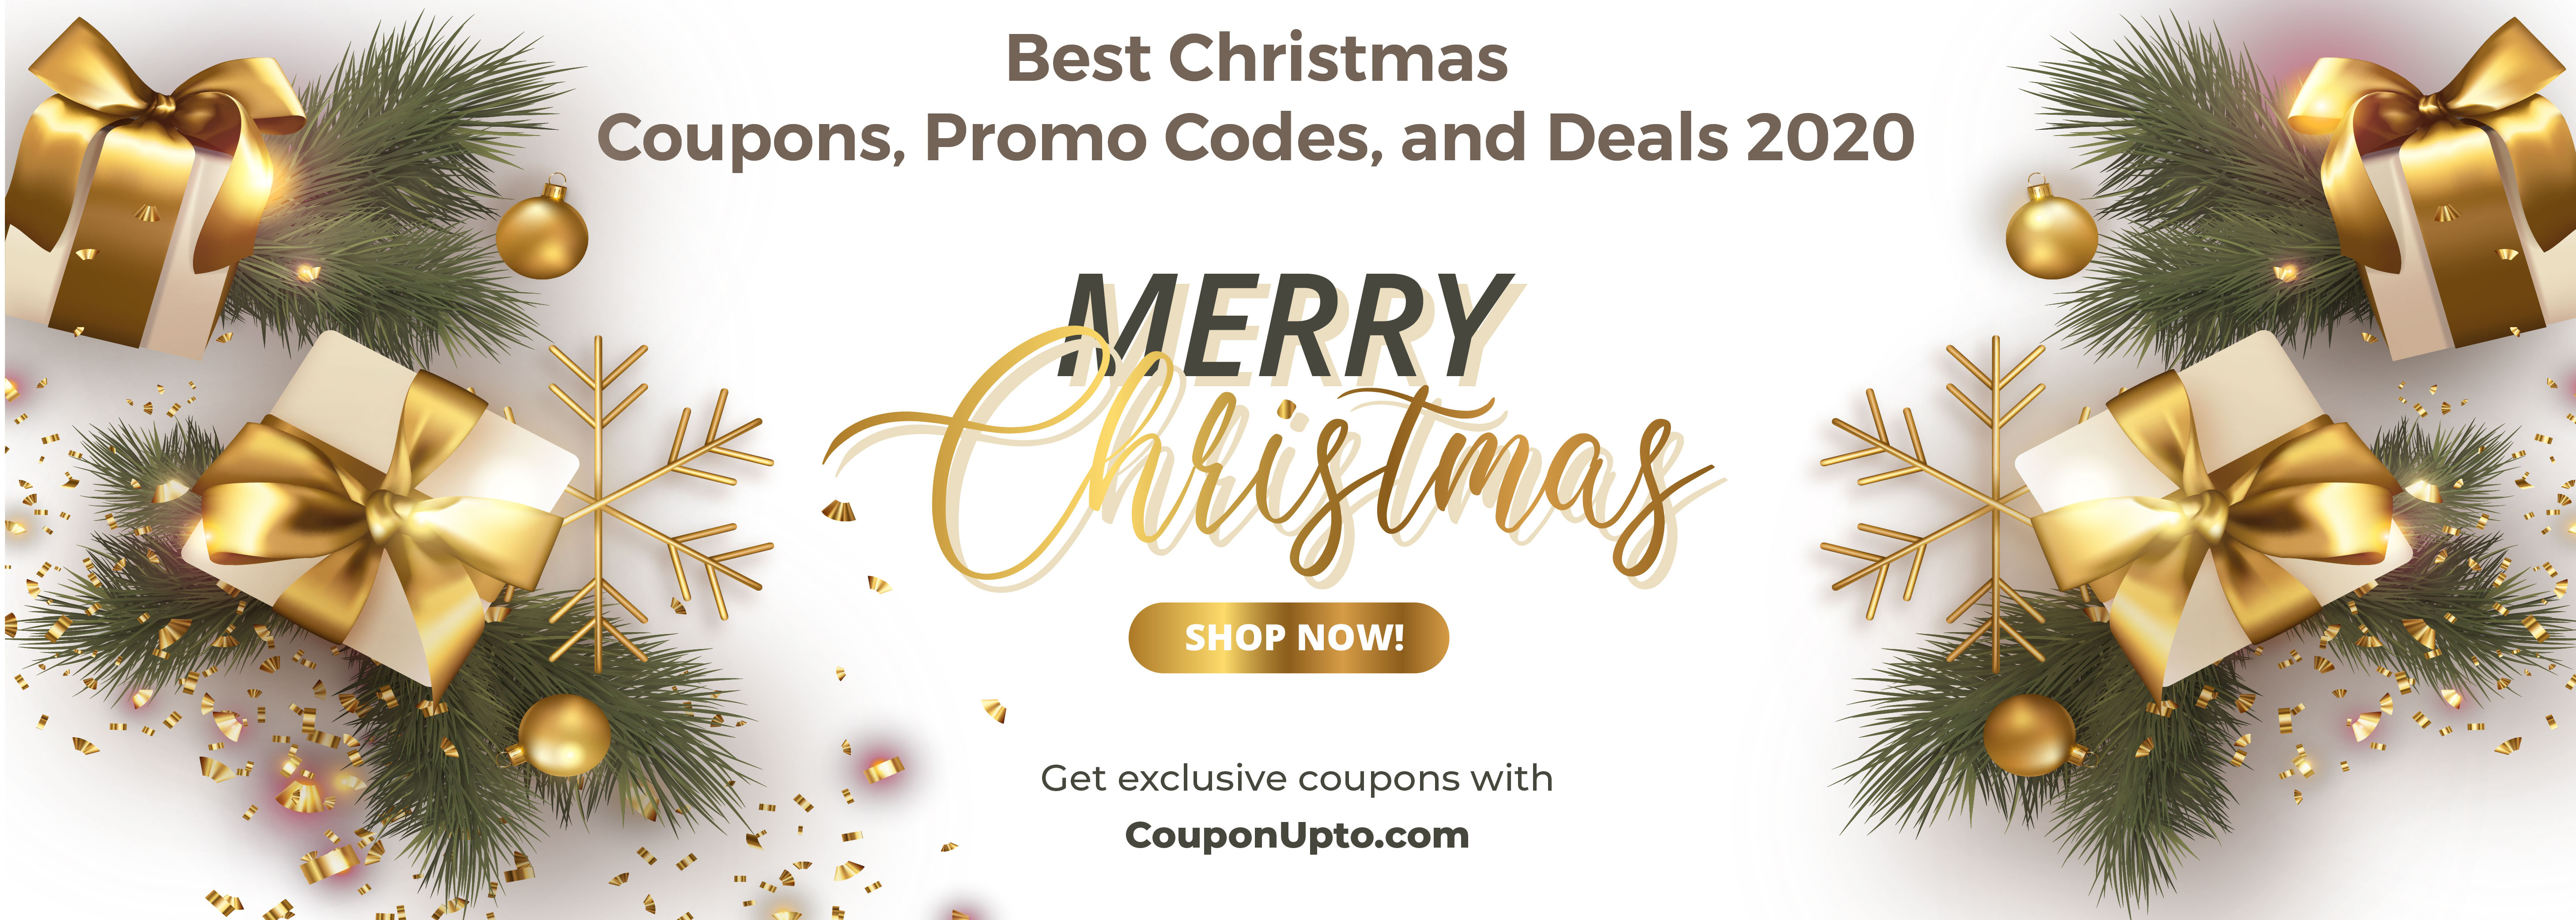 Best Christmas Coupons, Promo Codes, and Deals 2020